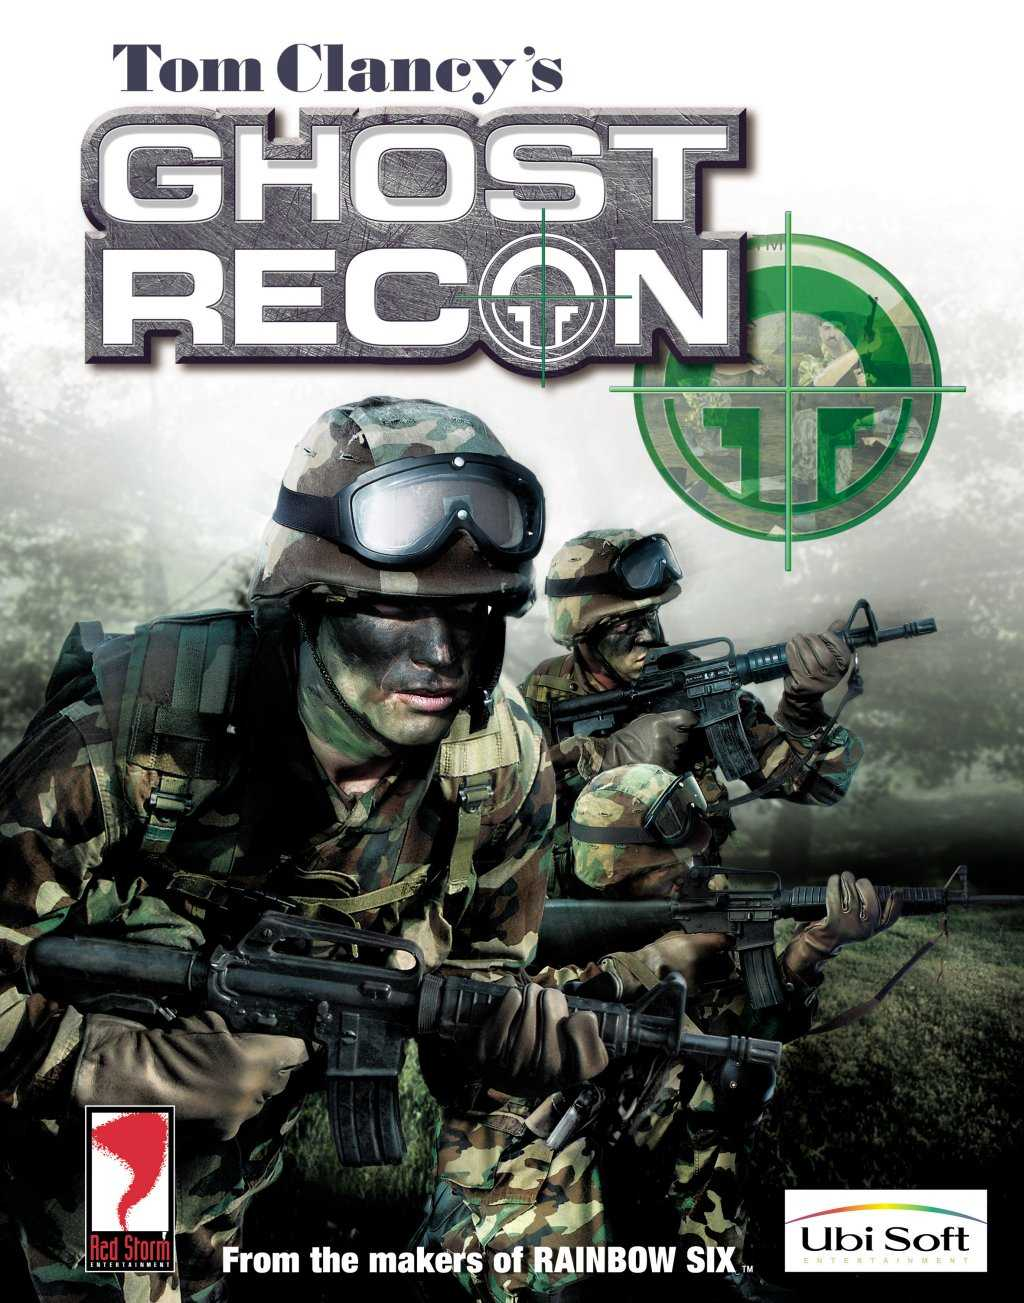 Tom Clancy's Ghost Recon (Game) | Ghost Recon Wiki ...